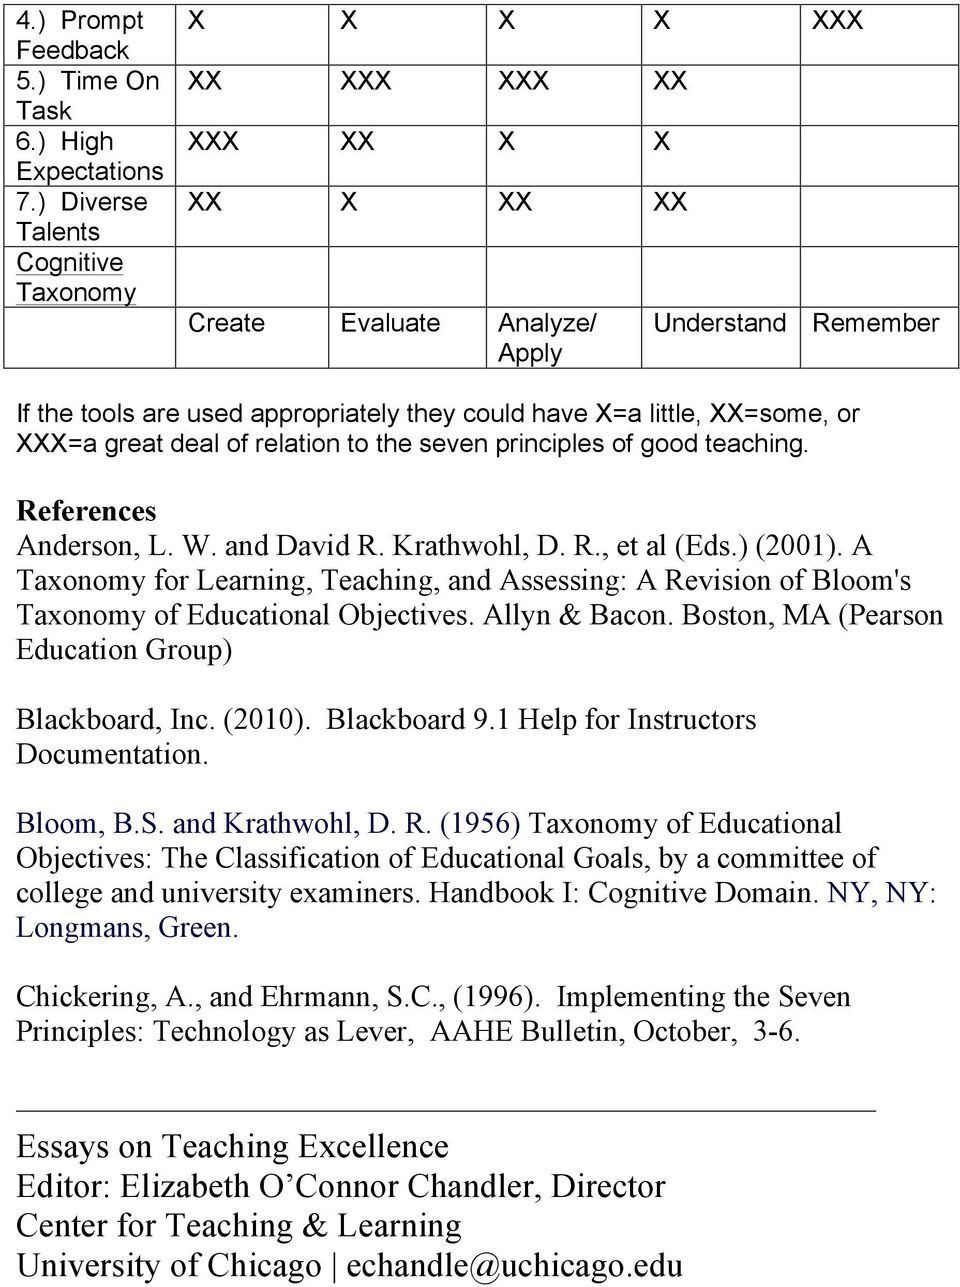 XX=some, or XXX=a great deal of relation to the seven principles of good teaching. References Anderson, L. W. and David R. Krathwohl, D. R., et al (Eds.) (2001).